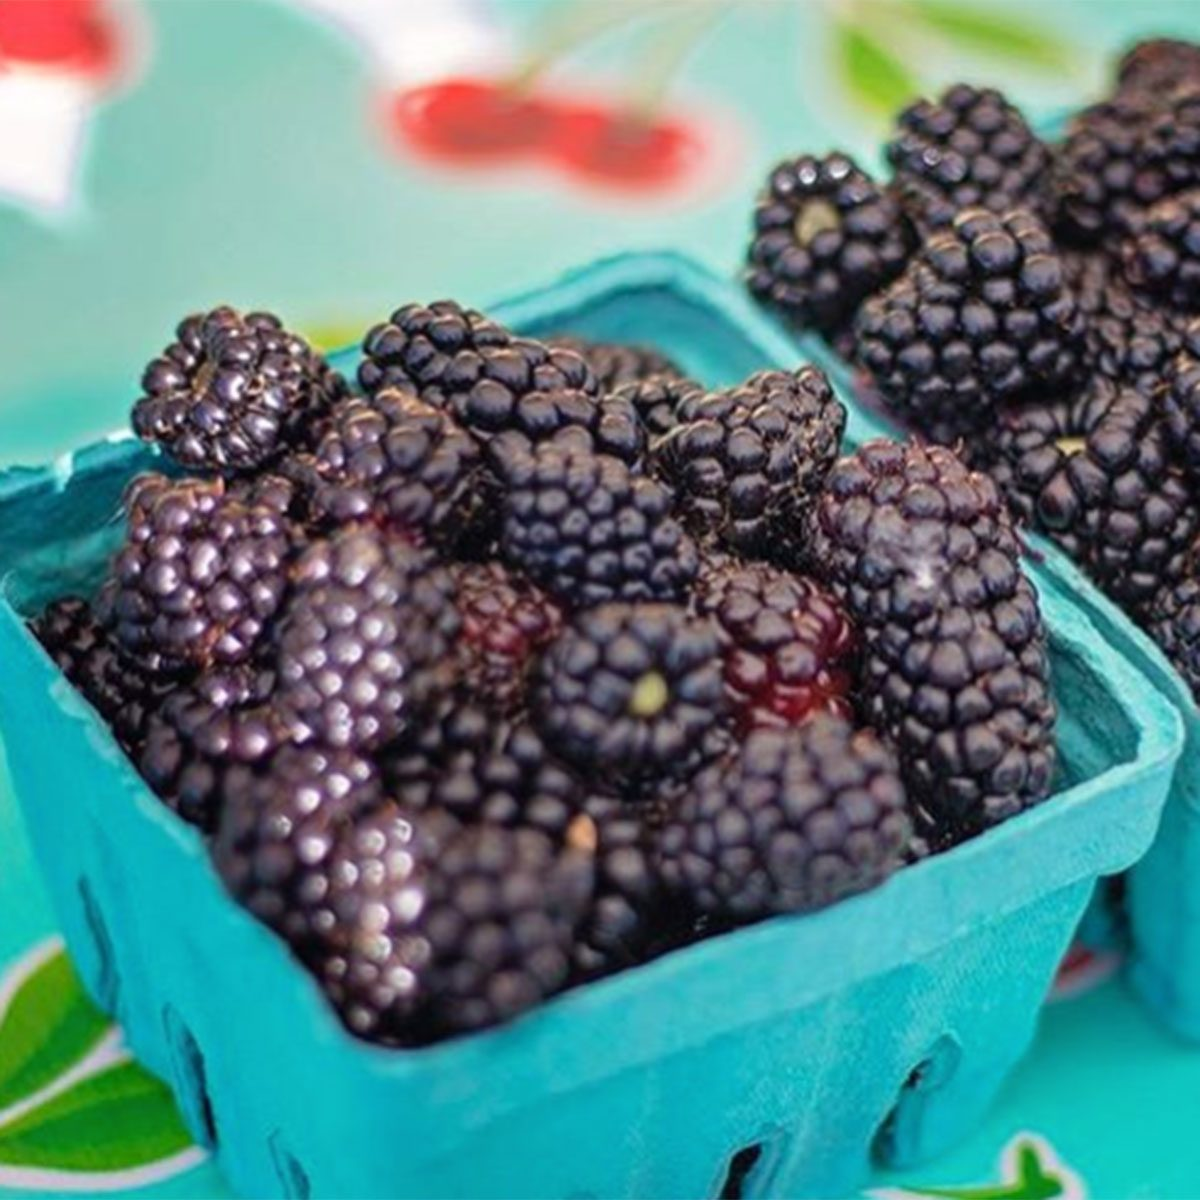 Blackberries in cartons